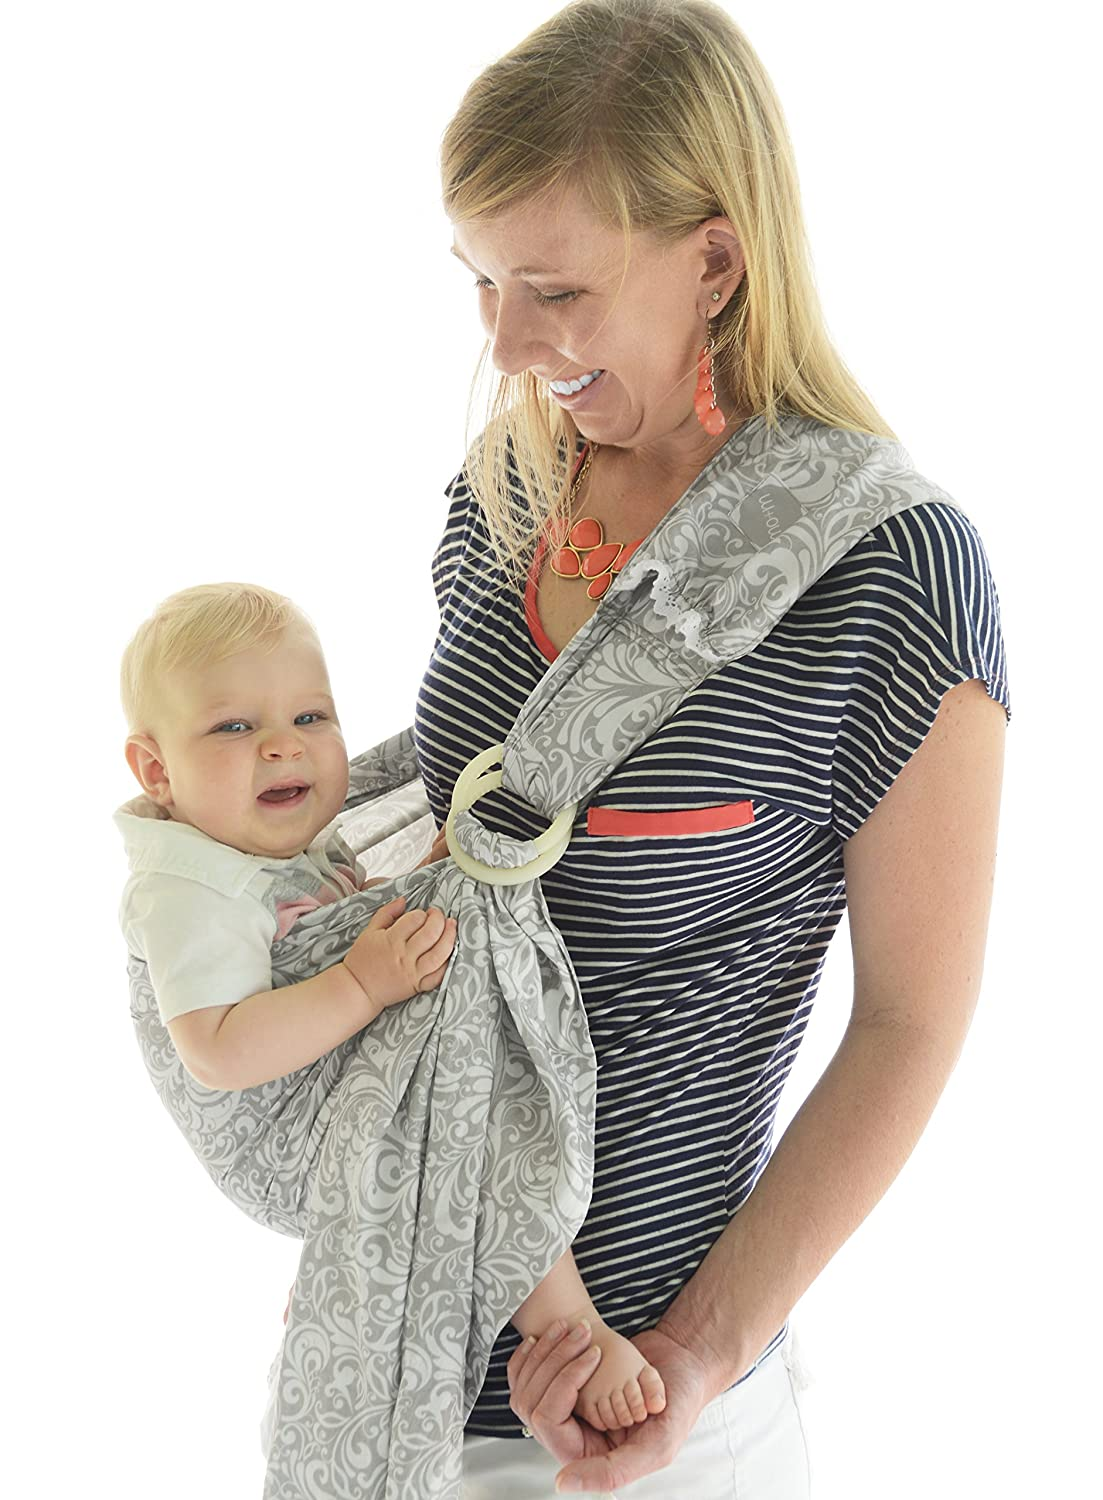 72eb602bb37 Amazon.com   Mo+m Ring Sling Baby Carrier   Breastfeeding Nursing Cover -  Adjustable Wrap  for Infant to Toddler Age  in Beautiful French Pattern -  Perfect ...